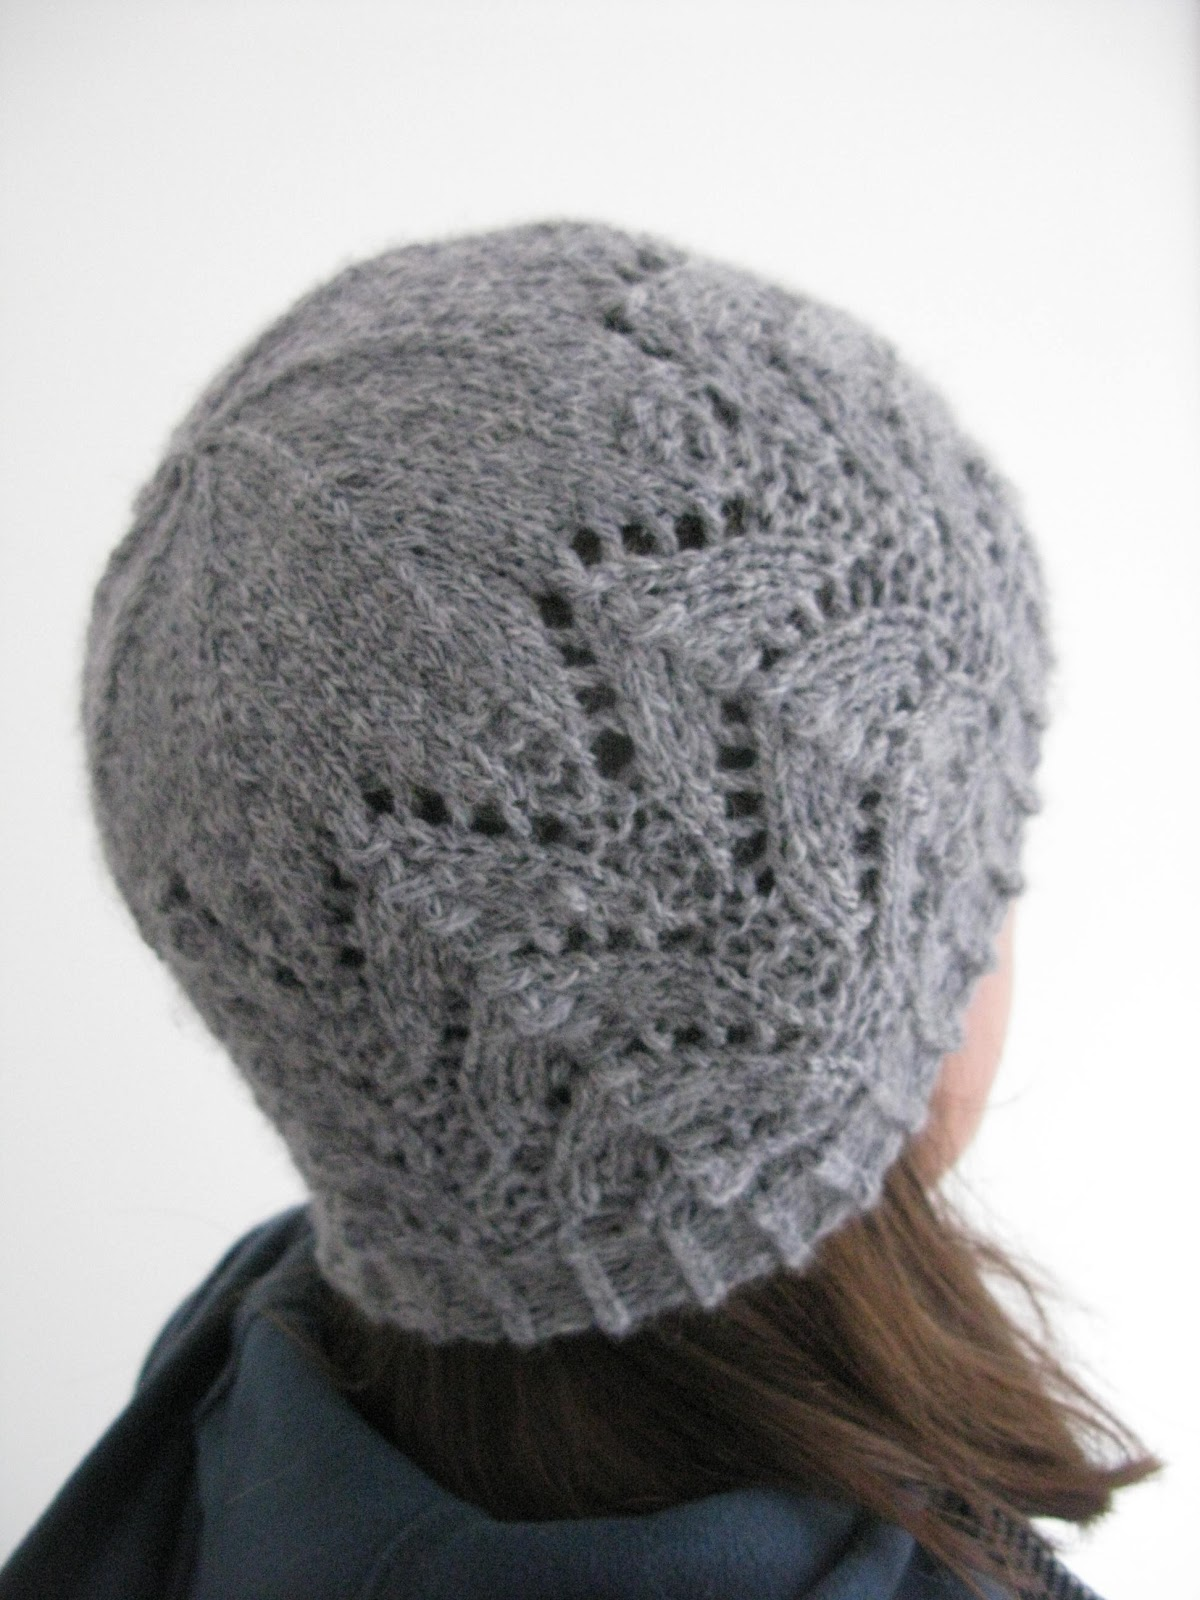 Knitting Patterns For Hats : littletheorem: Cladach Hat